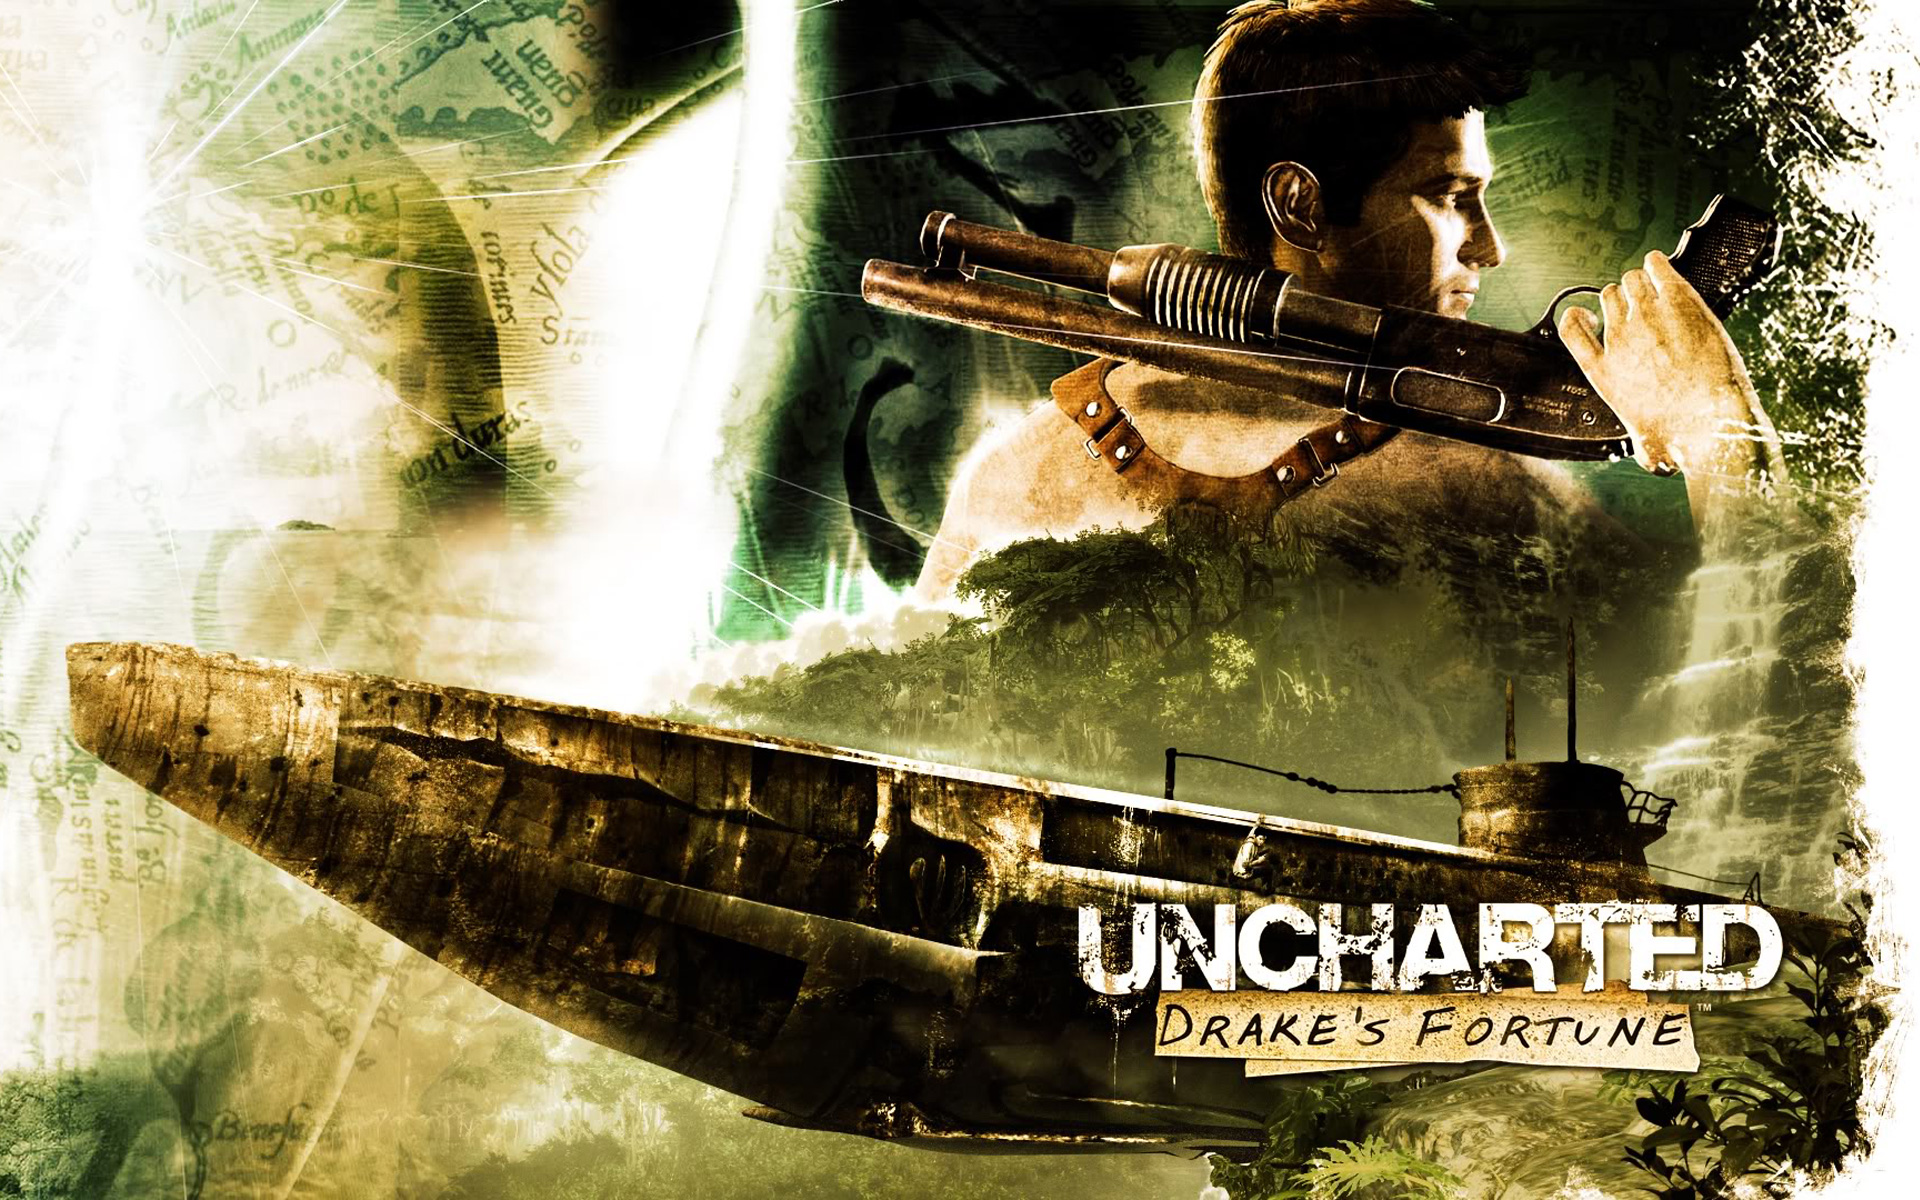 Free Uncharted: Drake's Fortune Wallpaper in 1920x1200